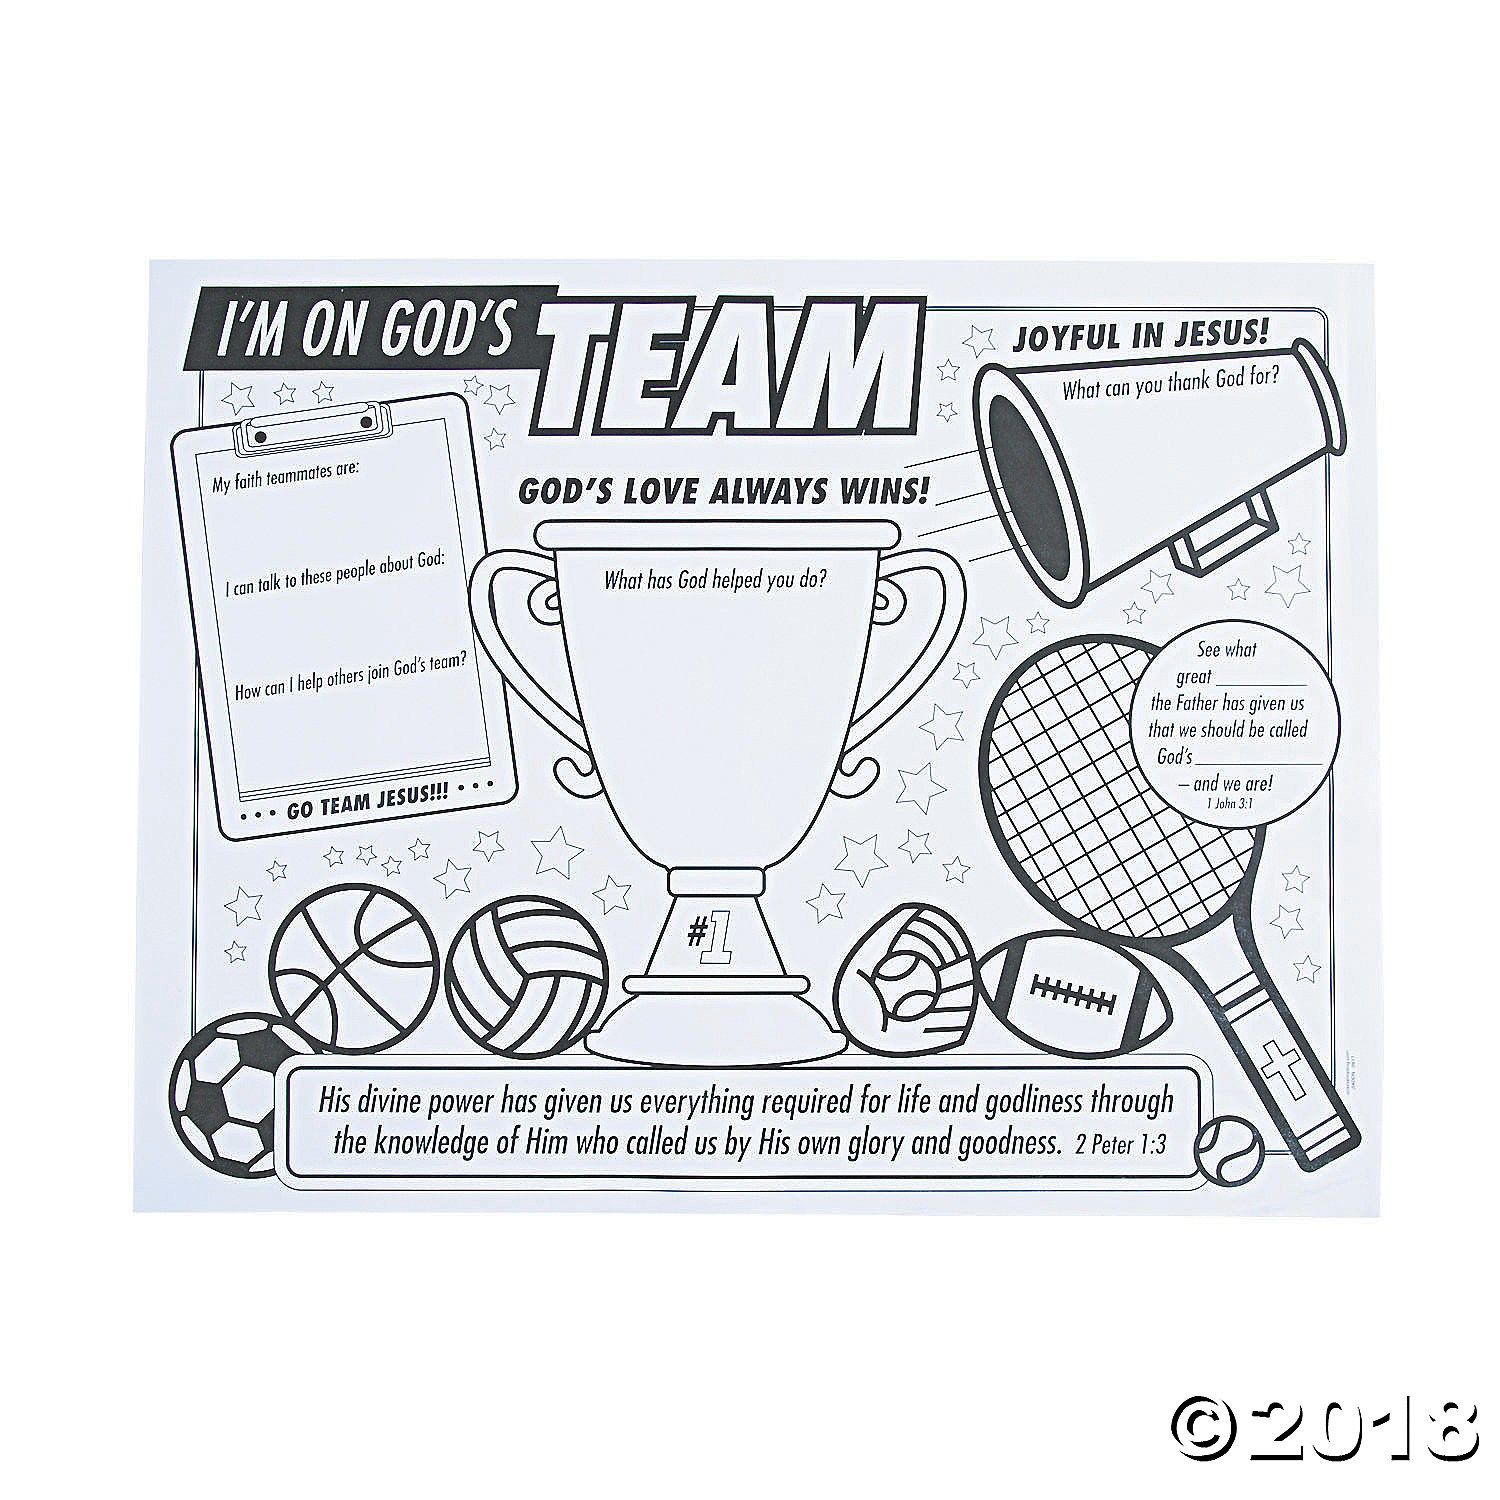 color-your-own-sports-vbs-posters~13794875 640×640 pixels